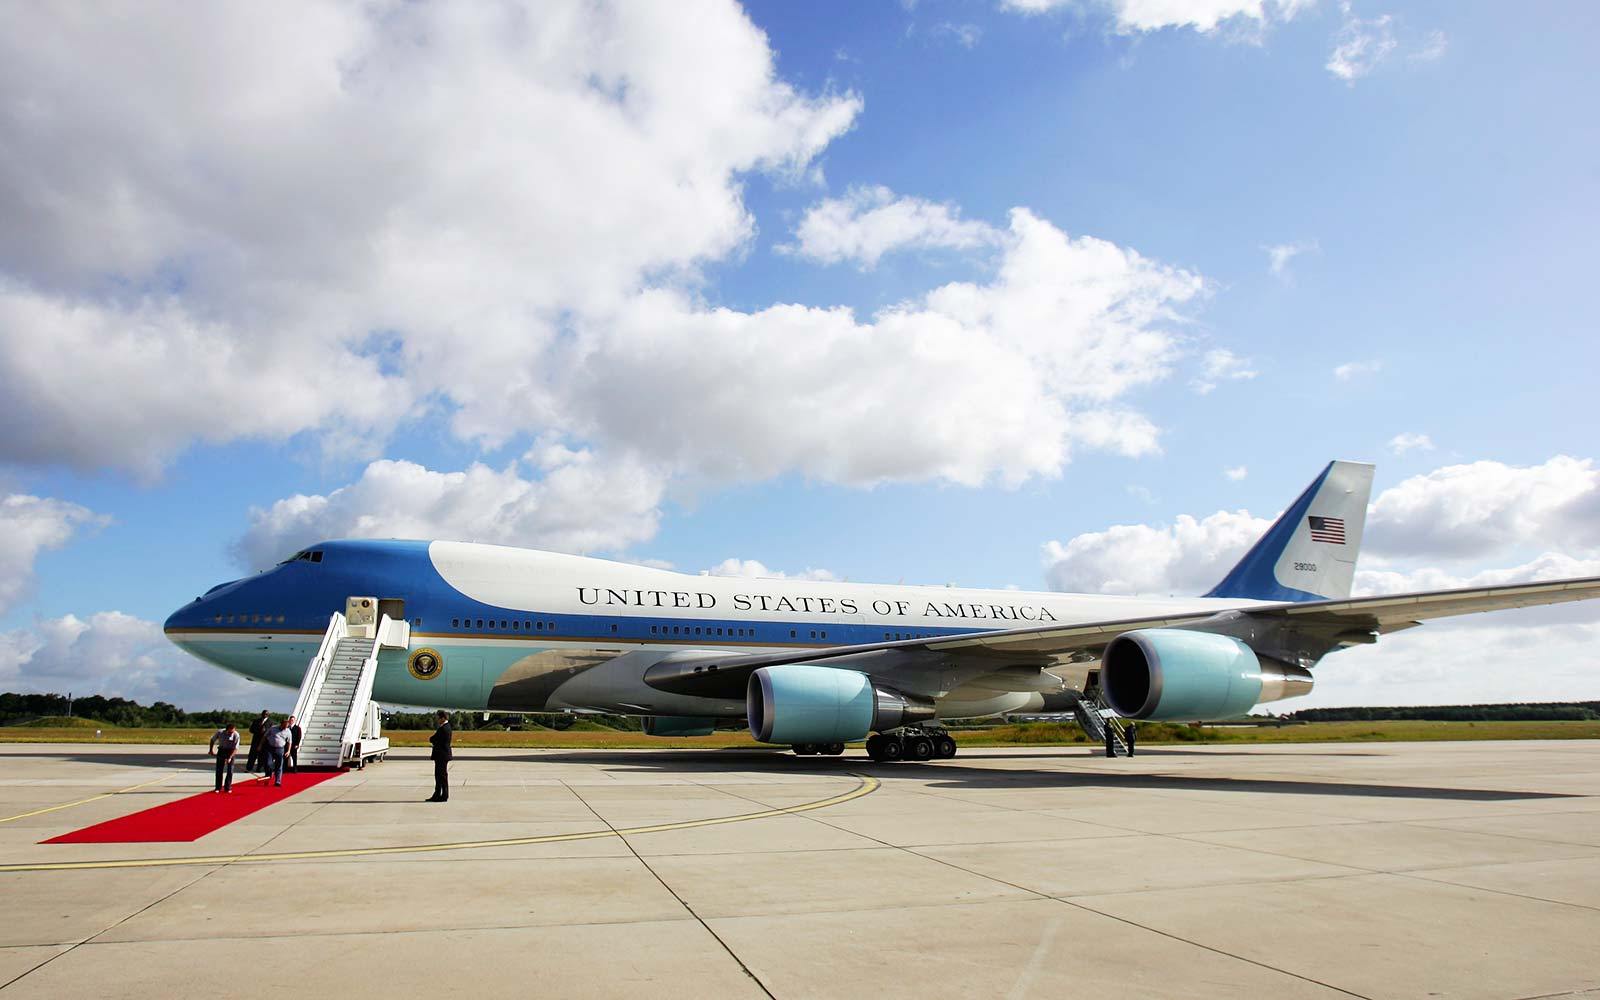 The Next Air Force One Could Be an Abandoned Plane From a Bankrupt Russian Airline